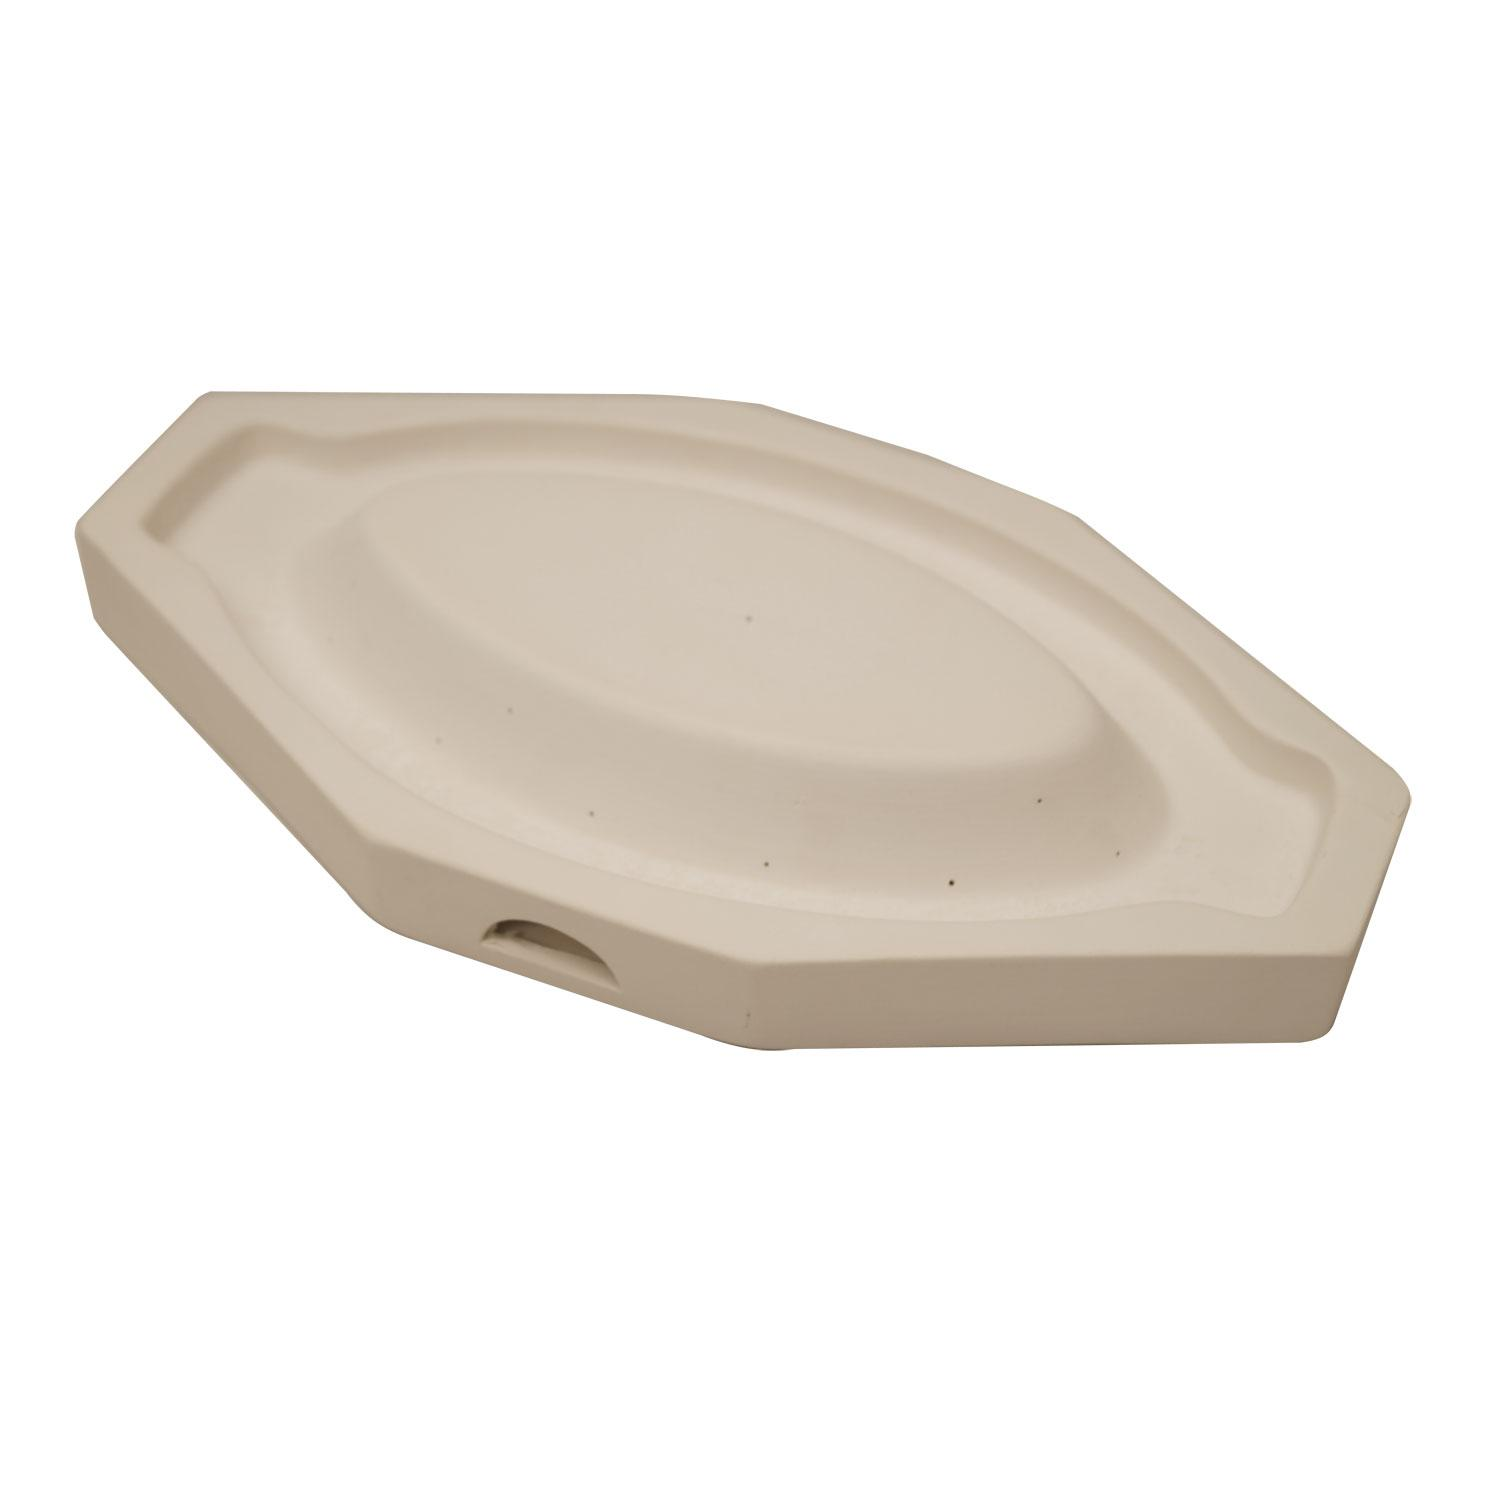 12 x 6-3/4 Oval Plate with Handles